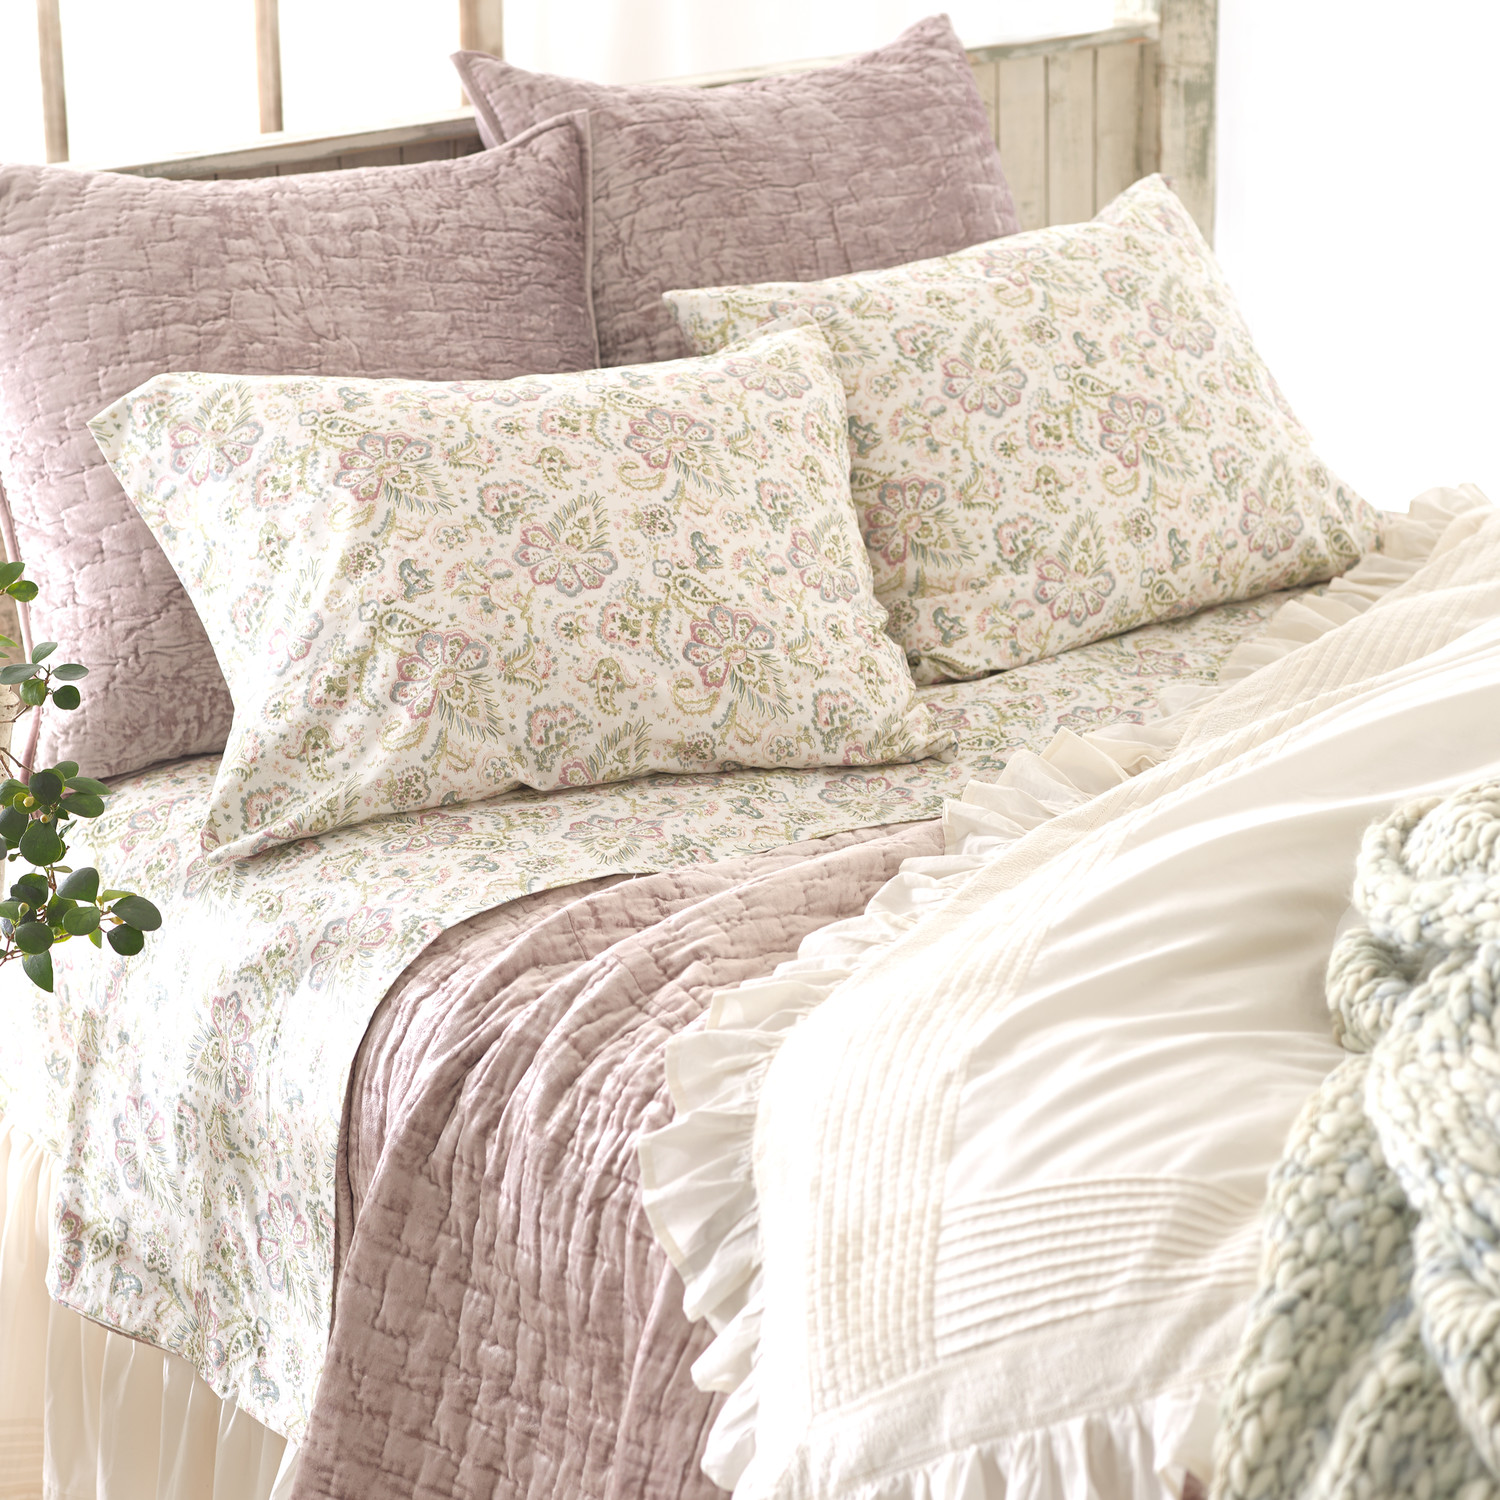 Chic Pine Cone Hill Fiona Duvet Cover In White And Purple With Floral Pattern For Bedding Ideas